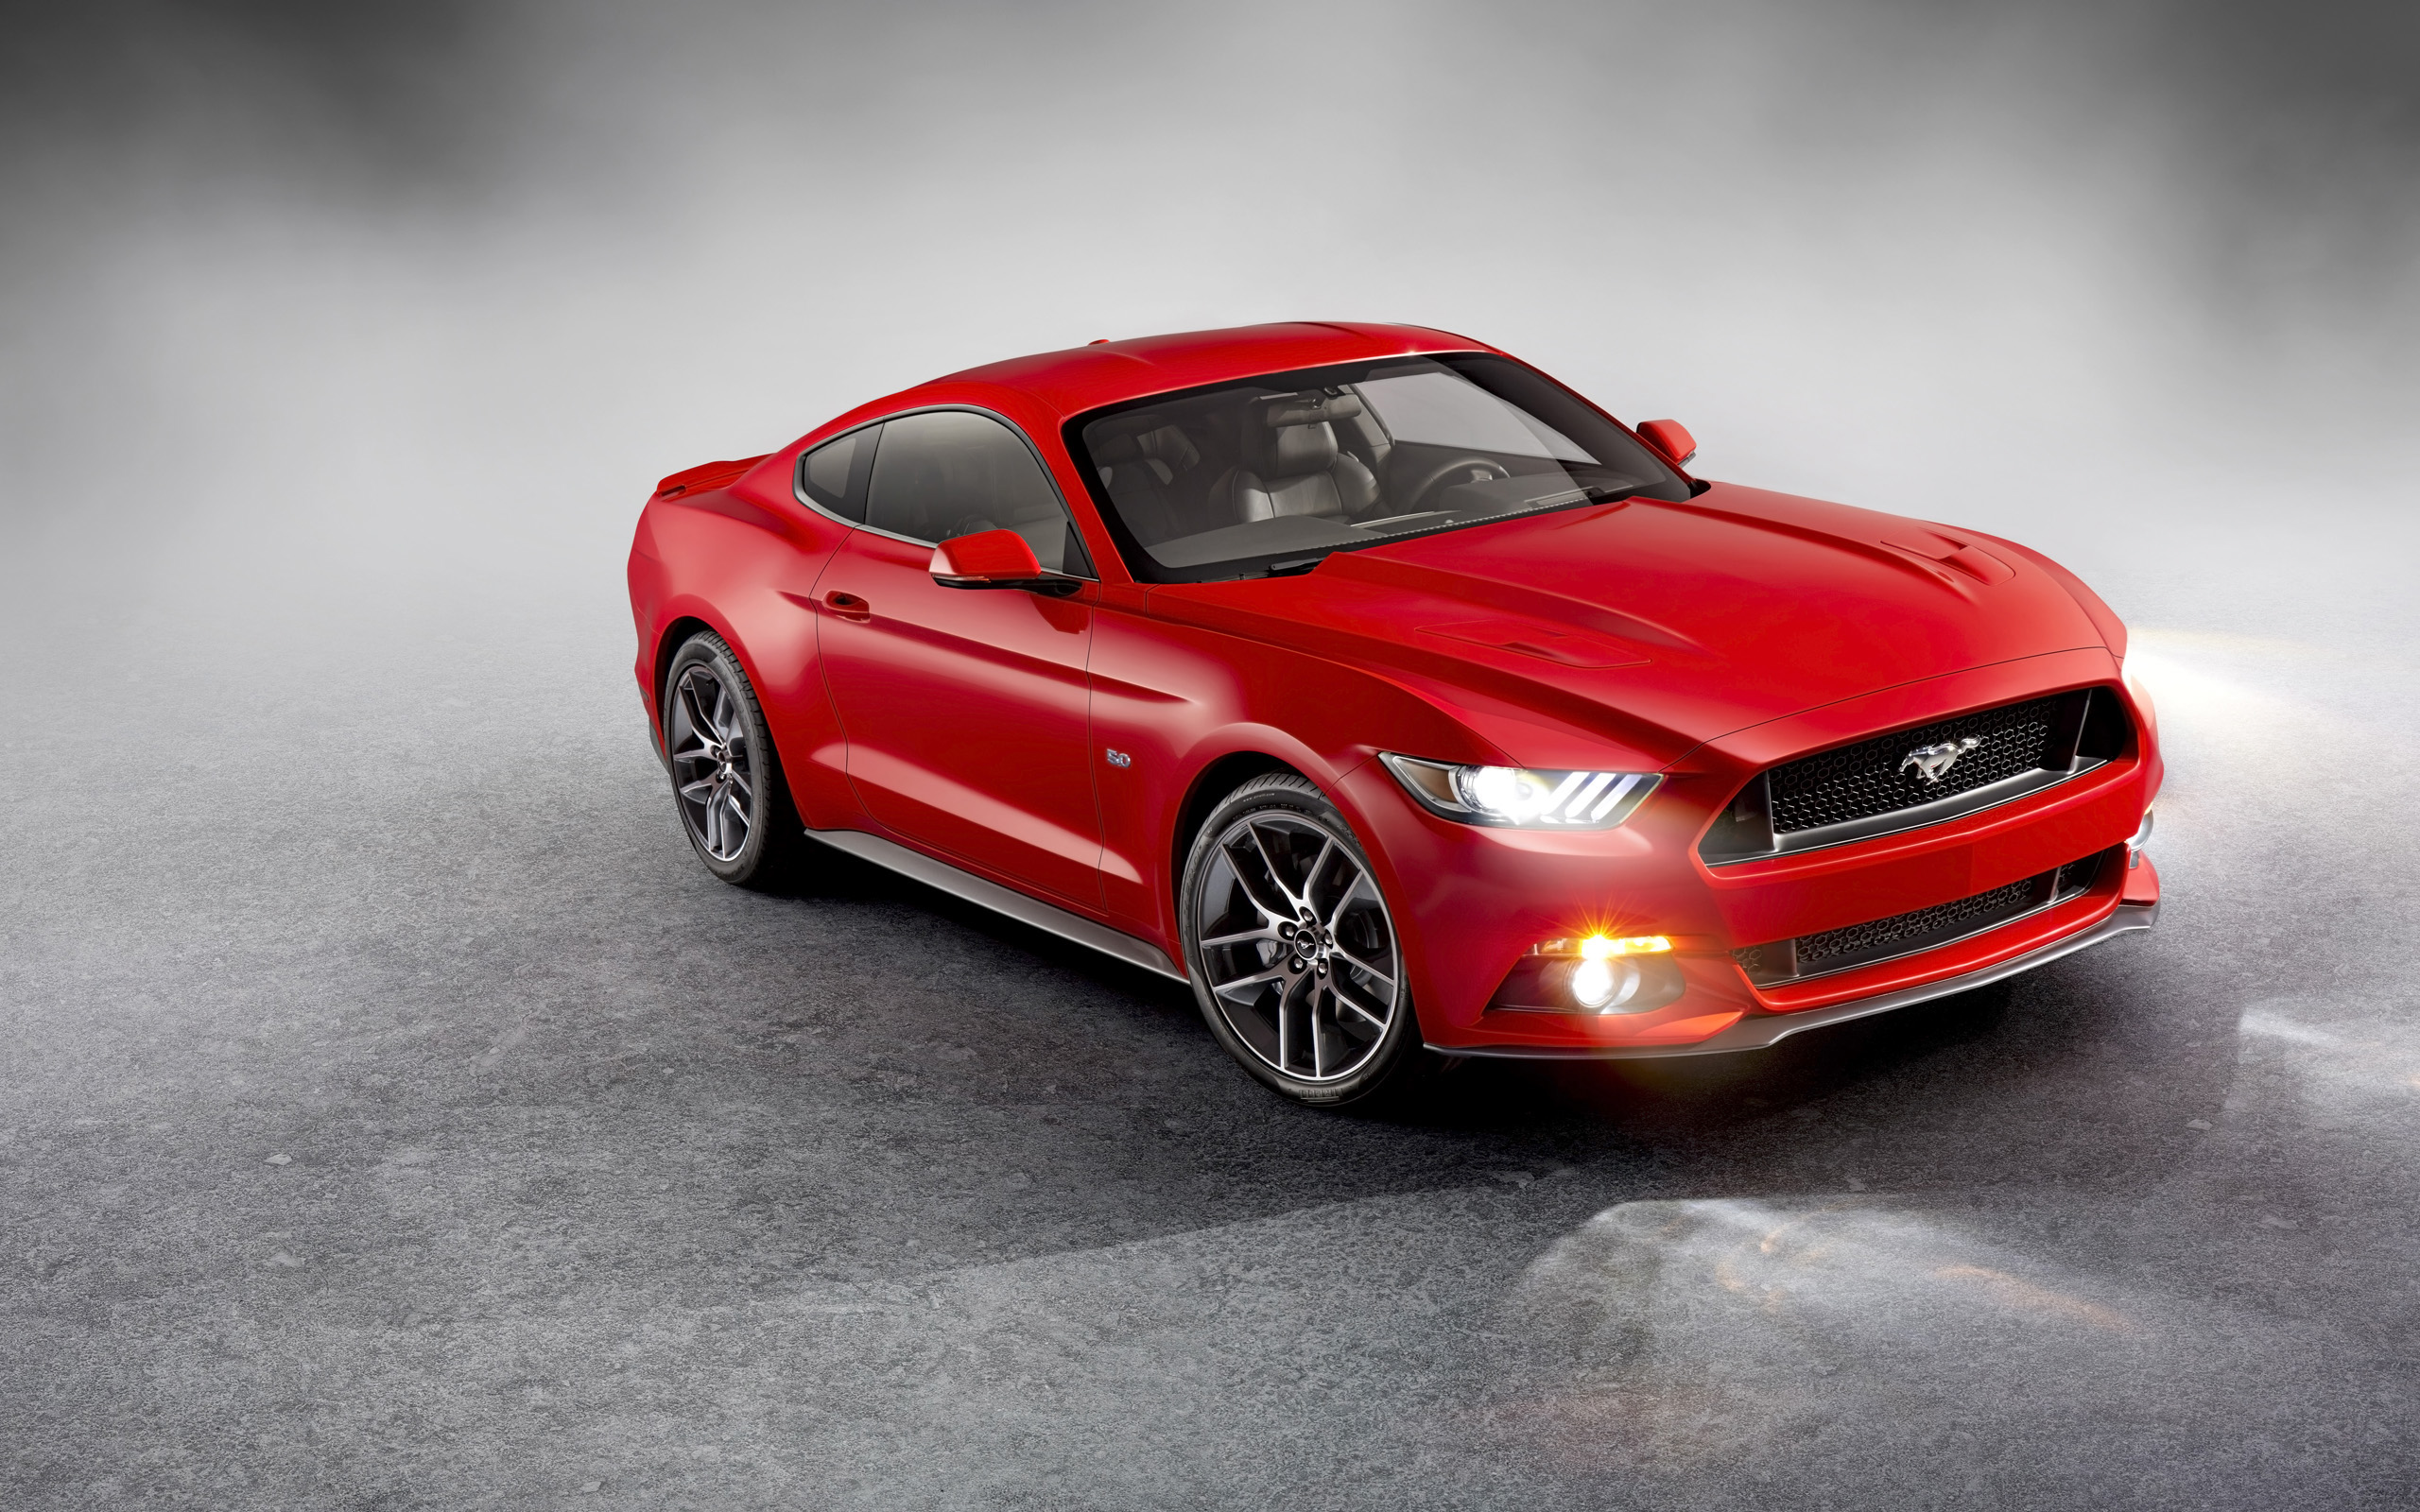 Ford Mustang 2015 Wallpapers HD Wallpapers 2560x1600